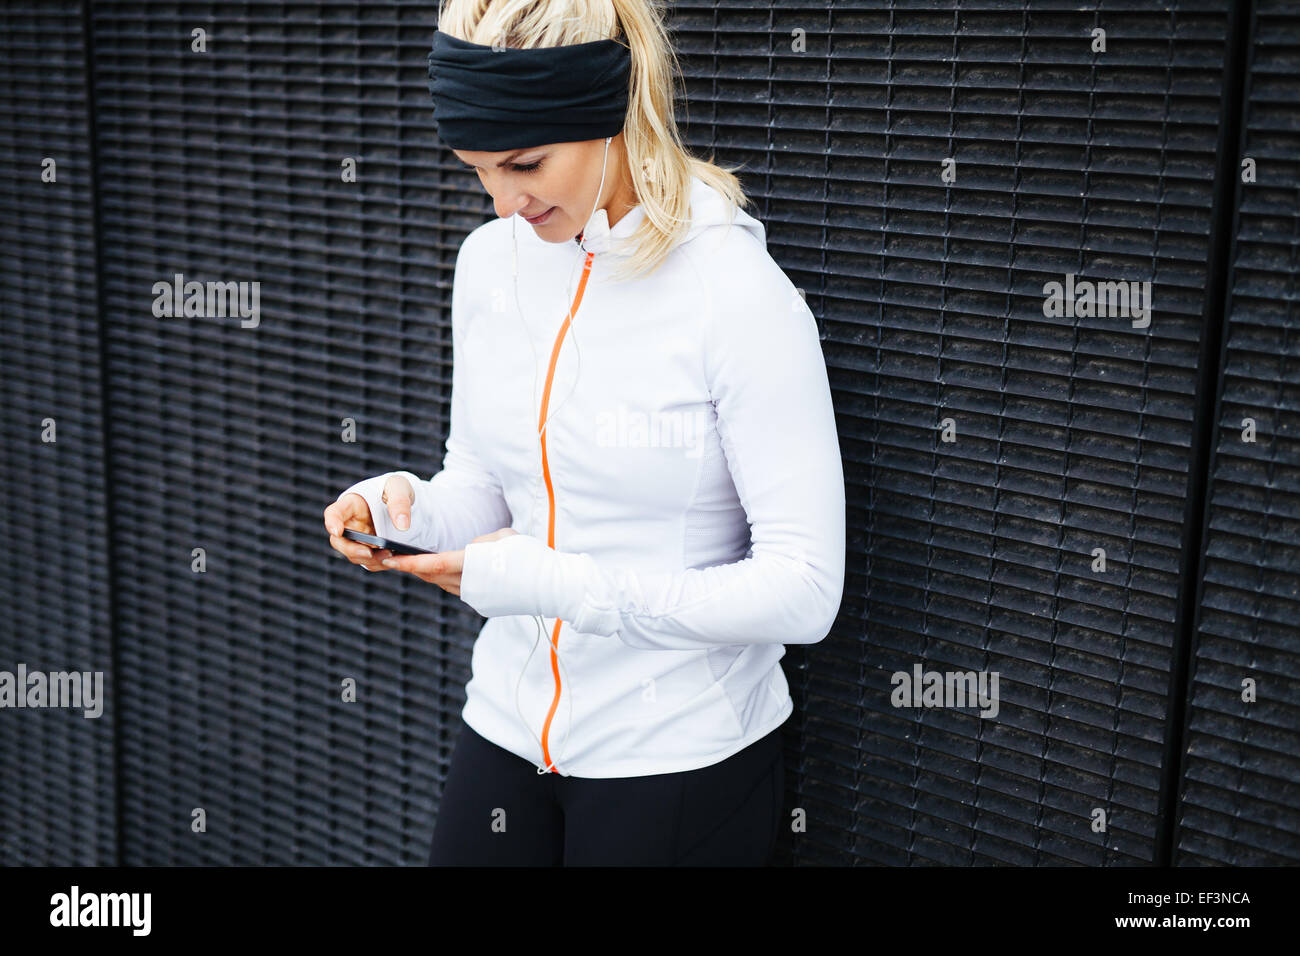 Image of young woman taking a break form workout using mobile phone outdoors. - Stock Image